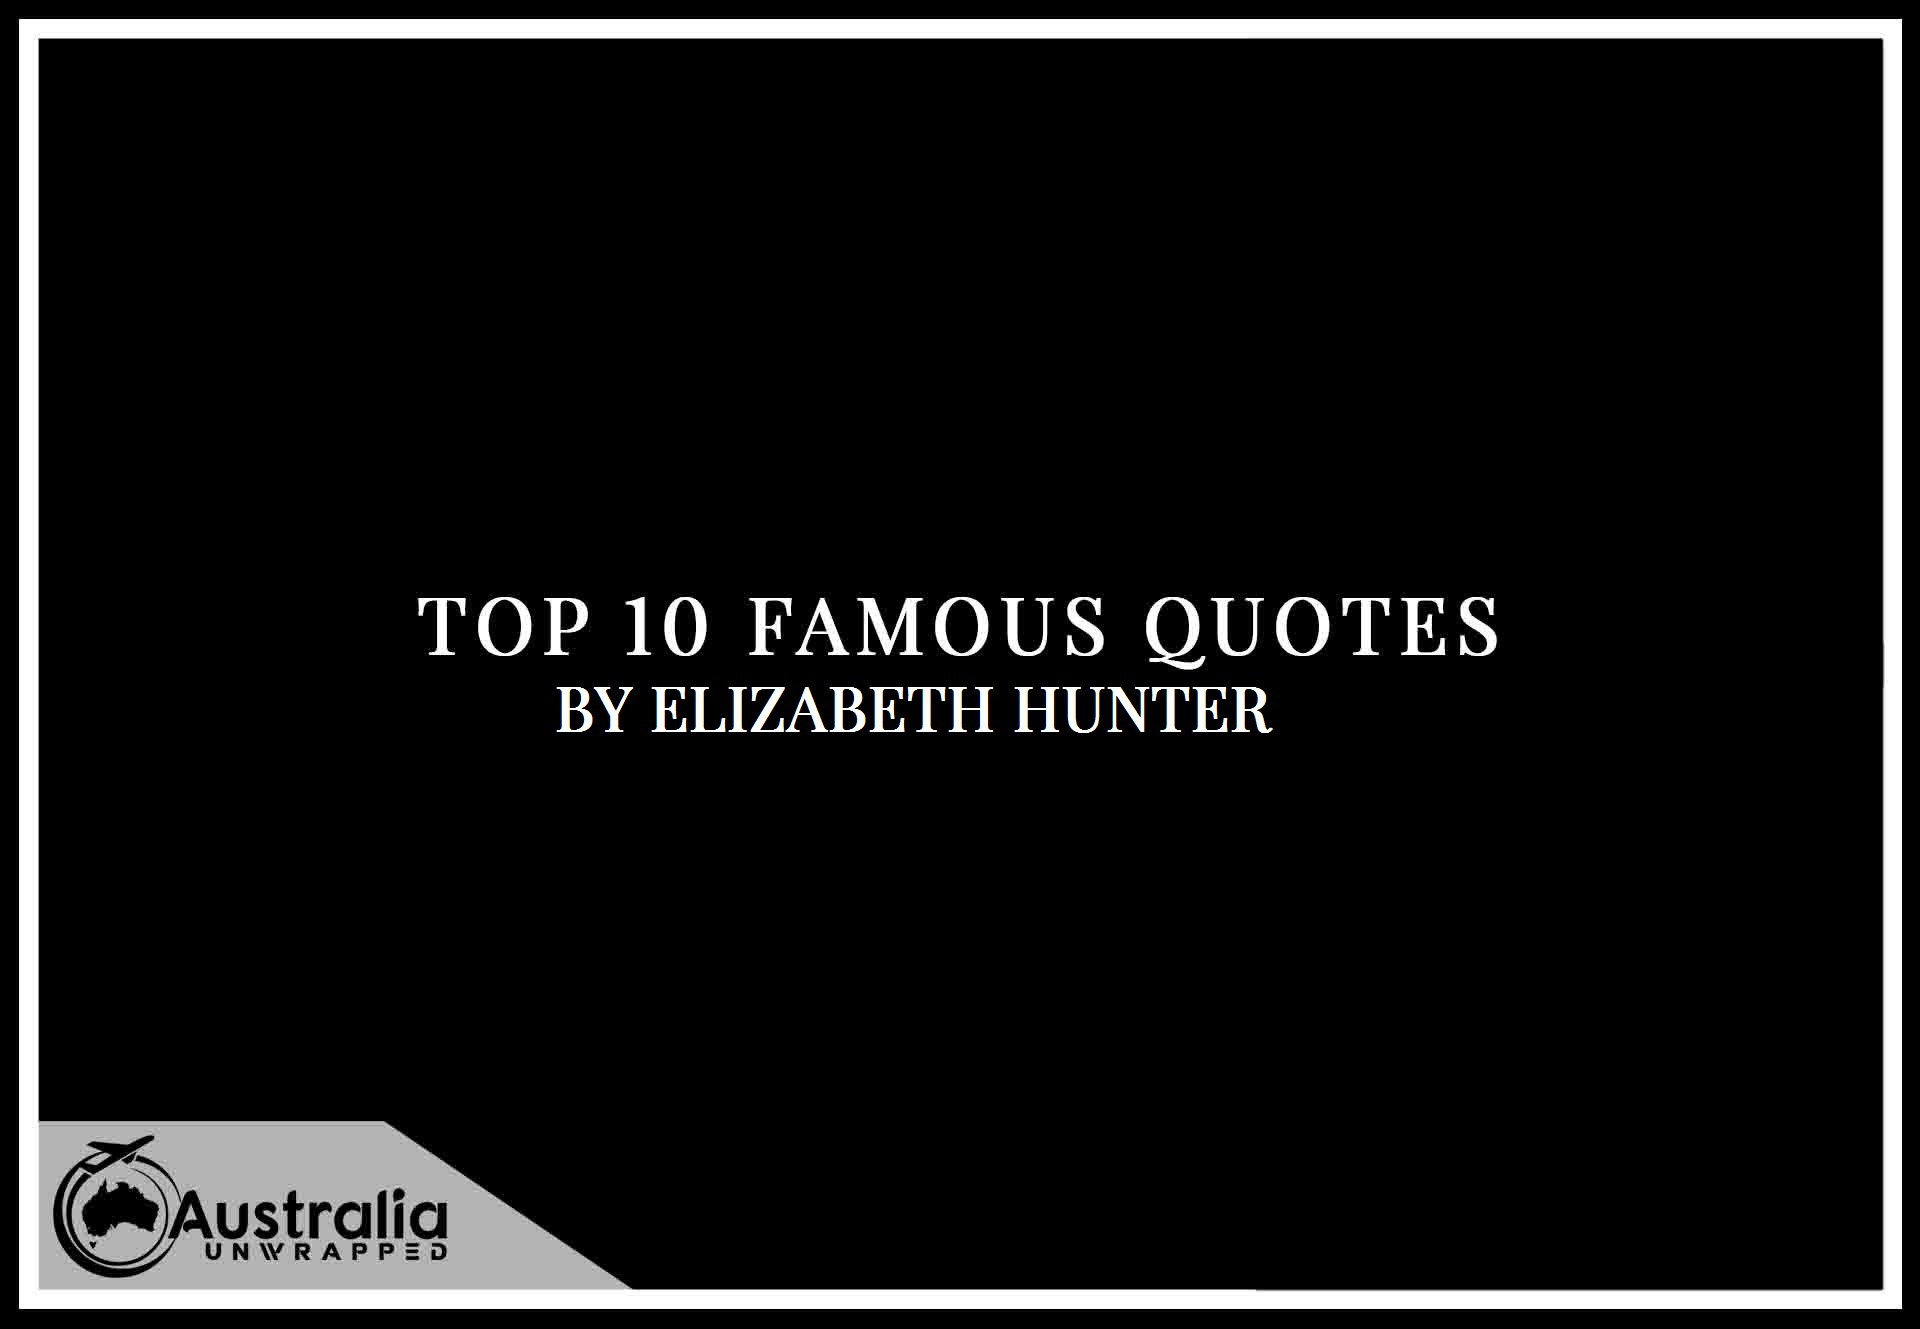 Elizabeth Hunter's Top 10 Popular and Famous Quotes